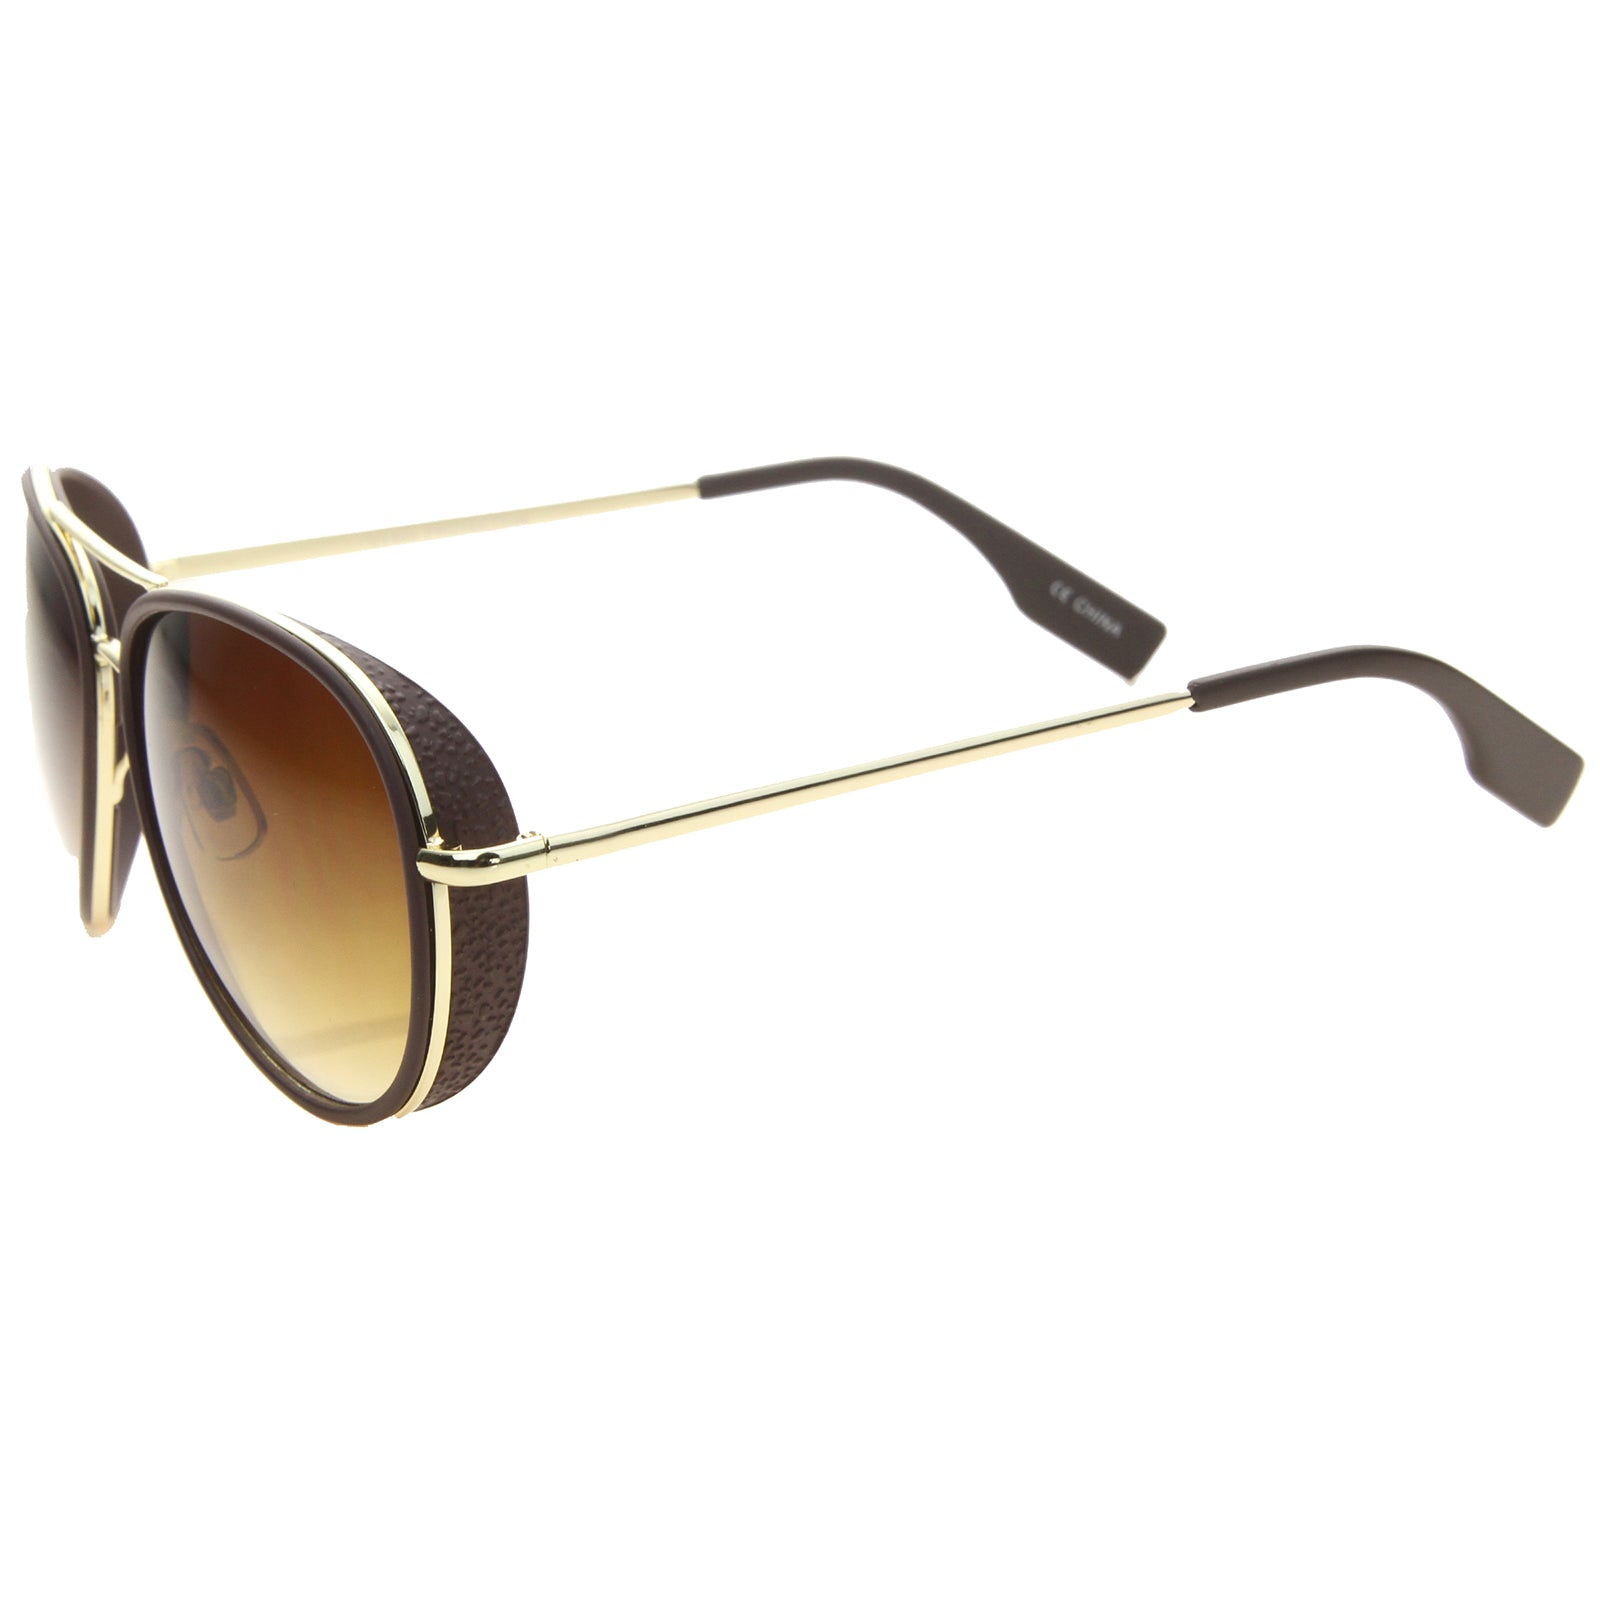 Womens Aviator Sunglasses With UV400 Protected Gradient Lens - sunglass.la - 3